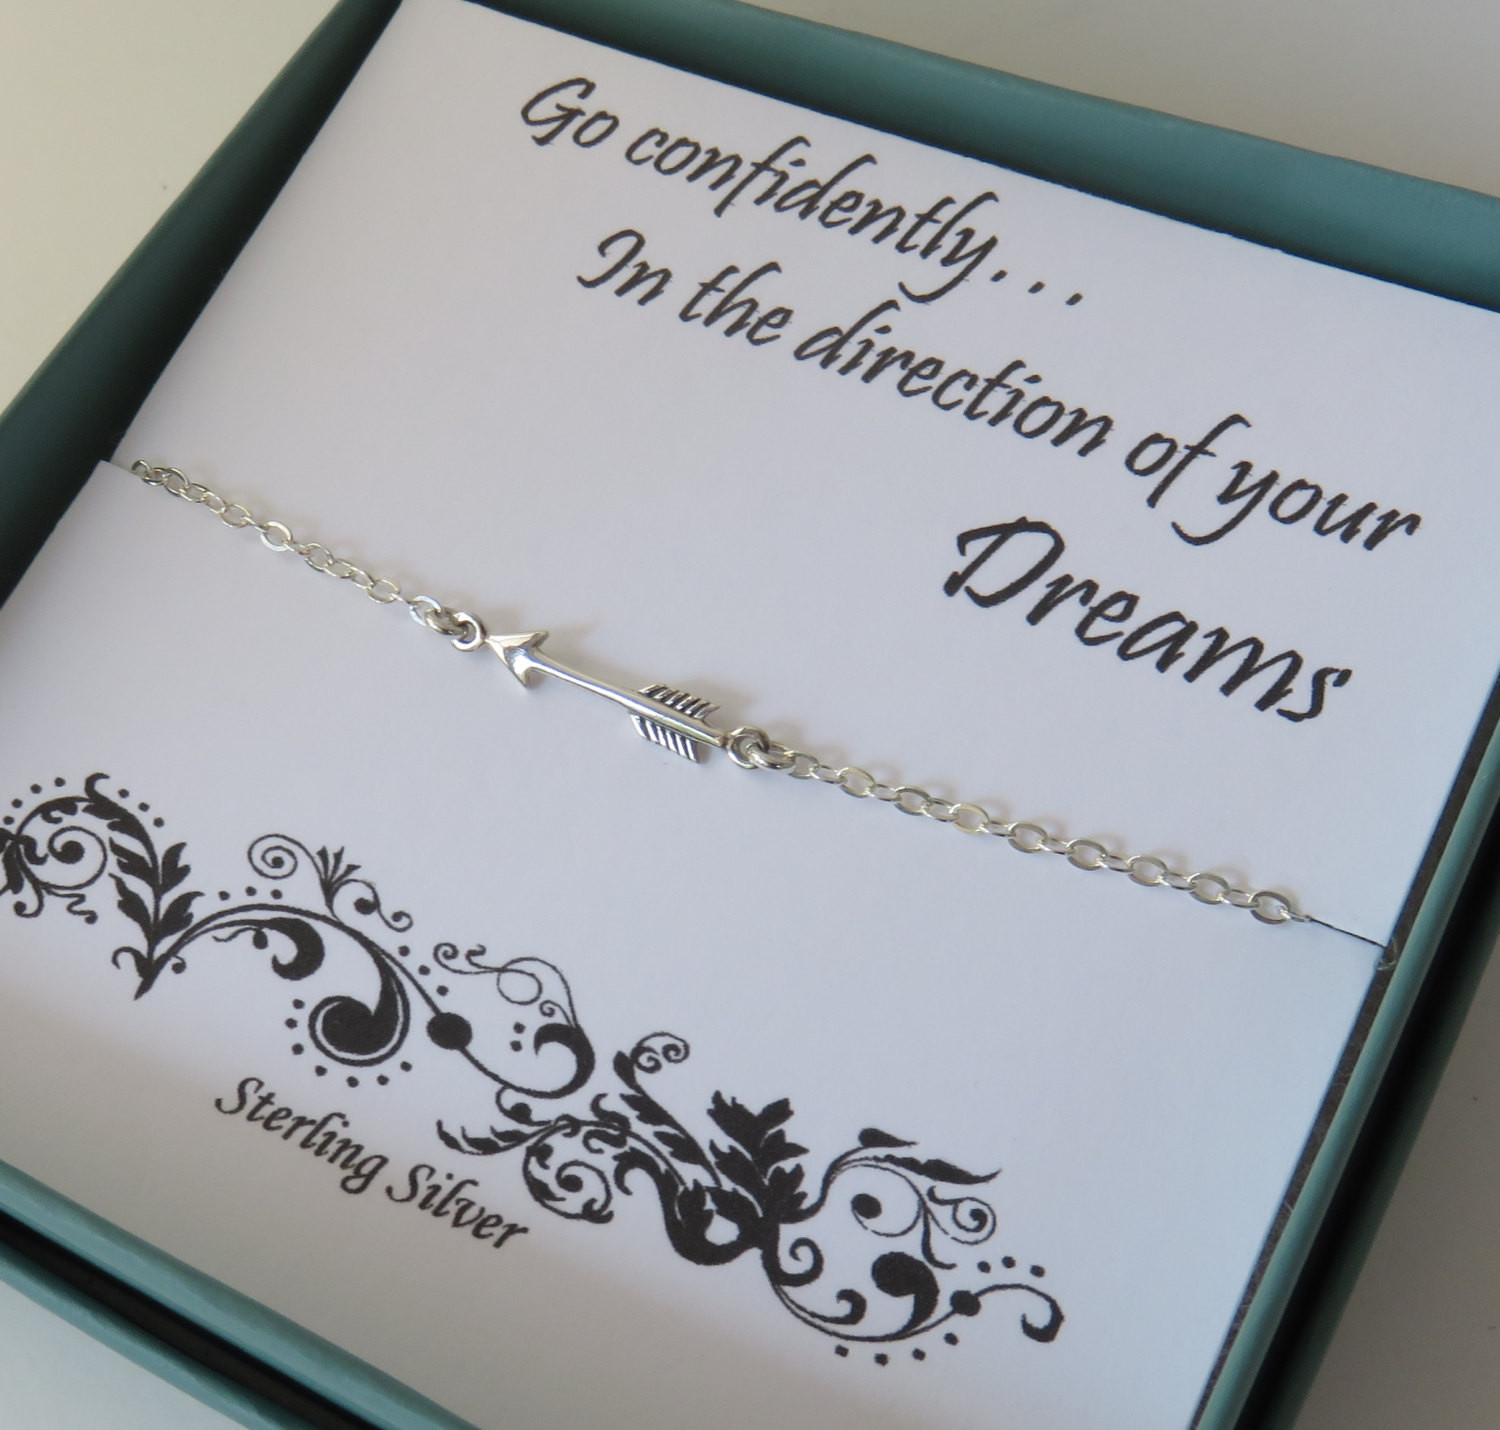 Graduation Jewelry Gift Ideas For Her  Sterling Silver Arrow Necklace Graduation Gift for Her Arrow